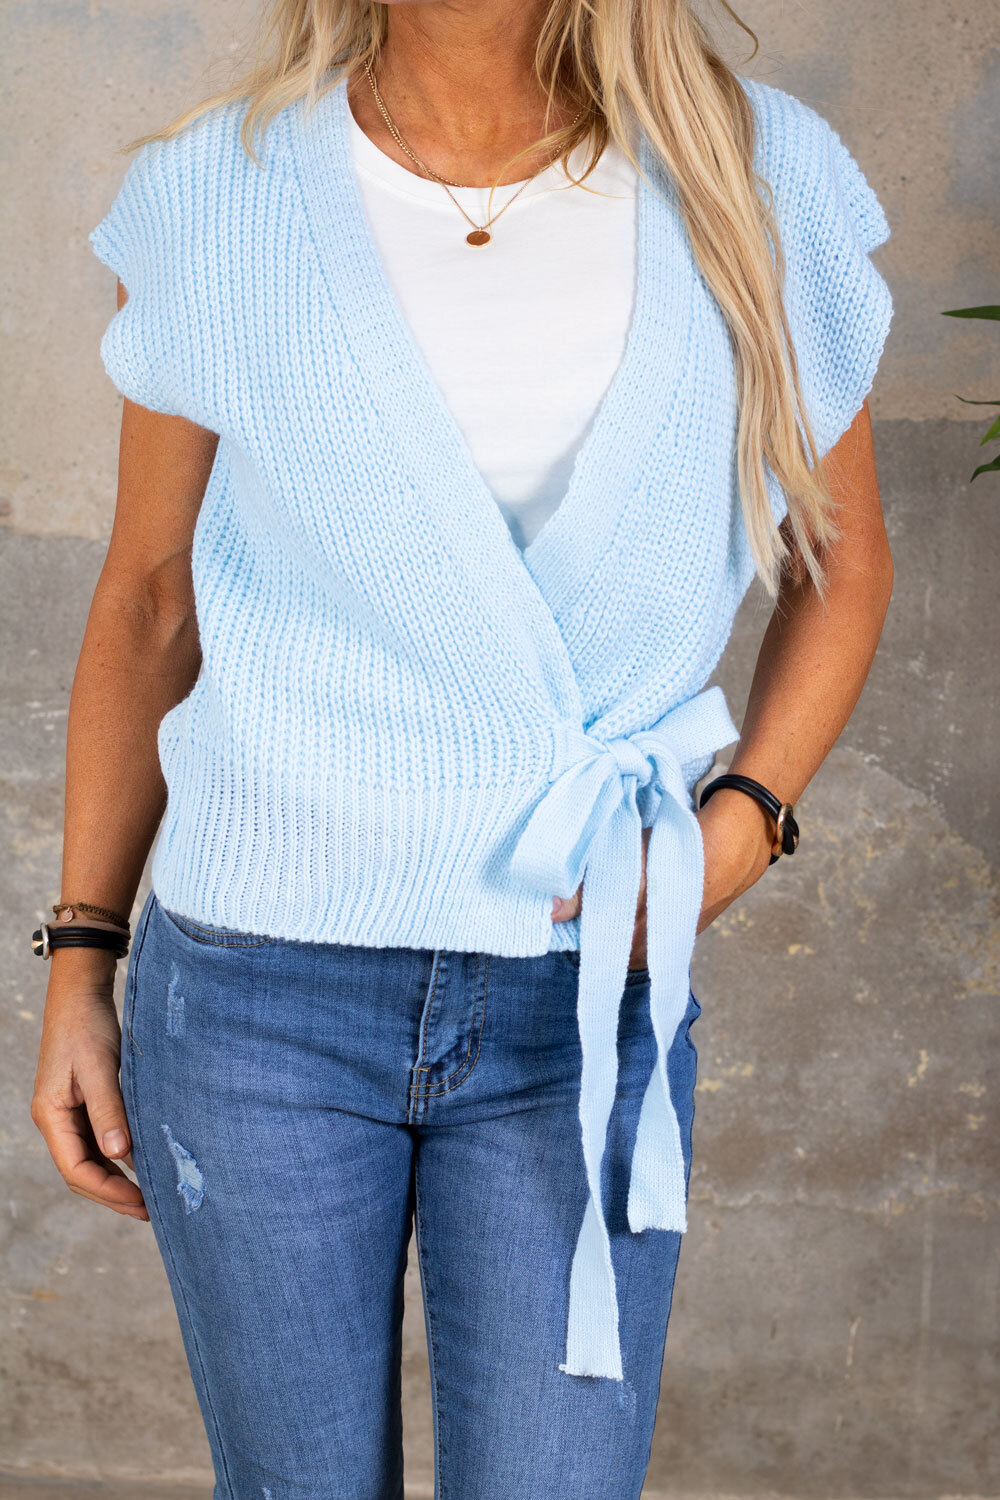 Kendra Knitted vest - Tie - Sky blue